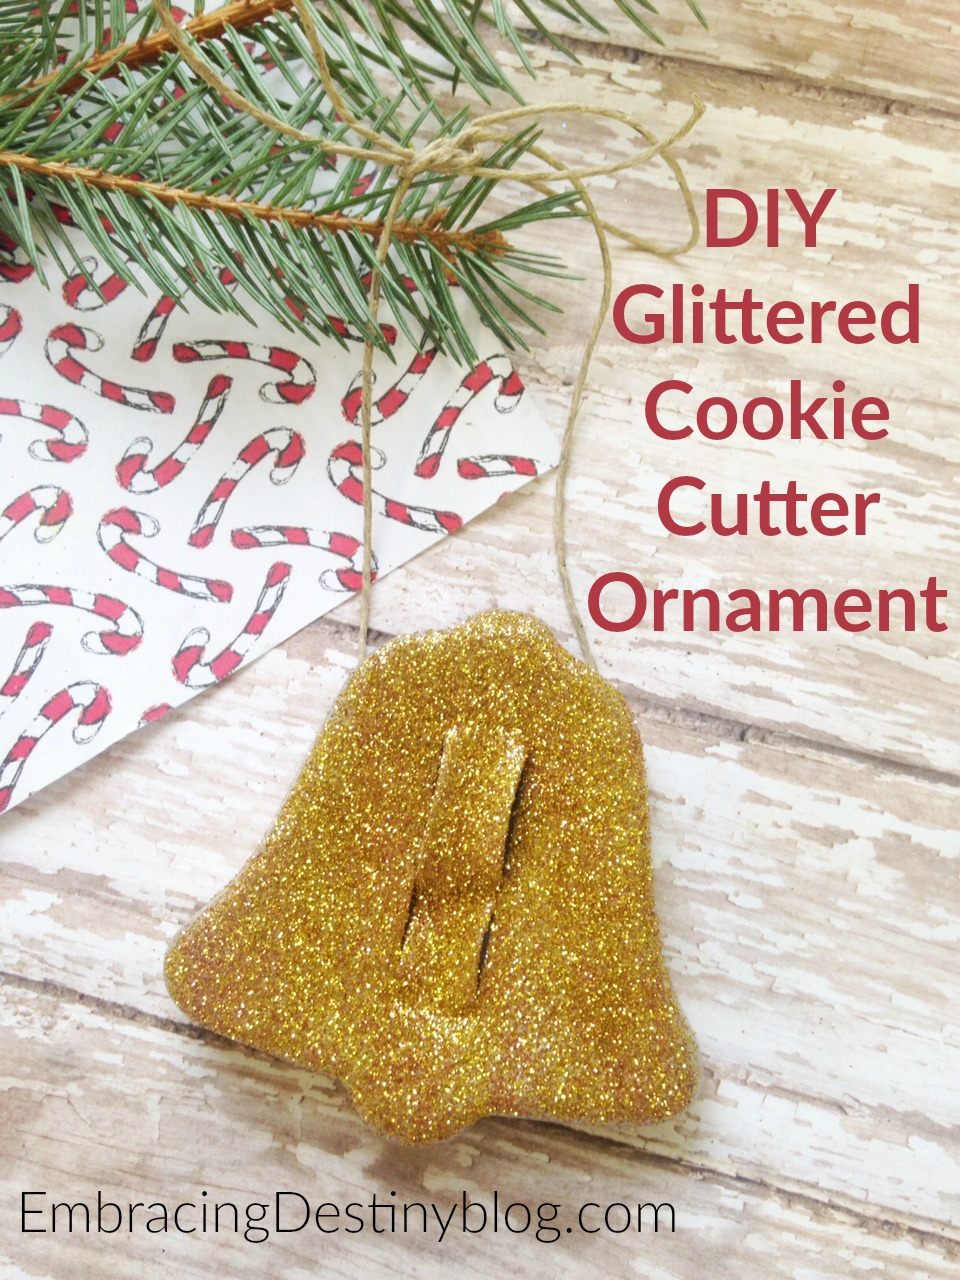 Easy DIY Glittered Cookie Cutter Ornament